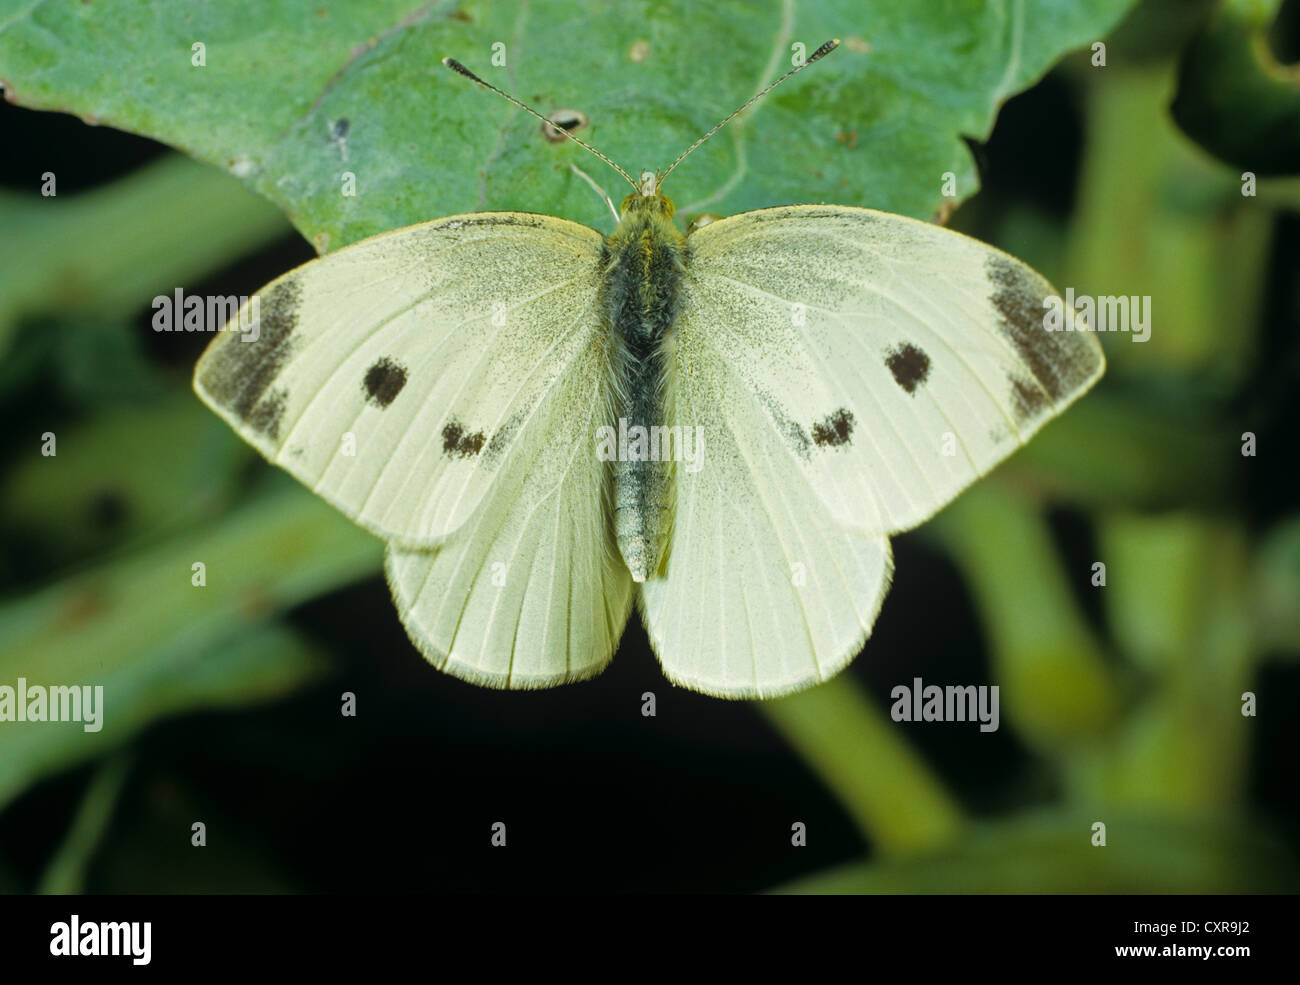 Large white butterfly, Pieris brassicae, settled wings open on a cabbage leaf Stock Photo